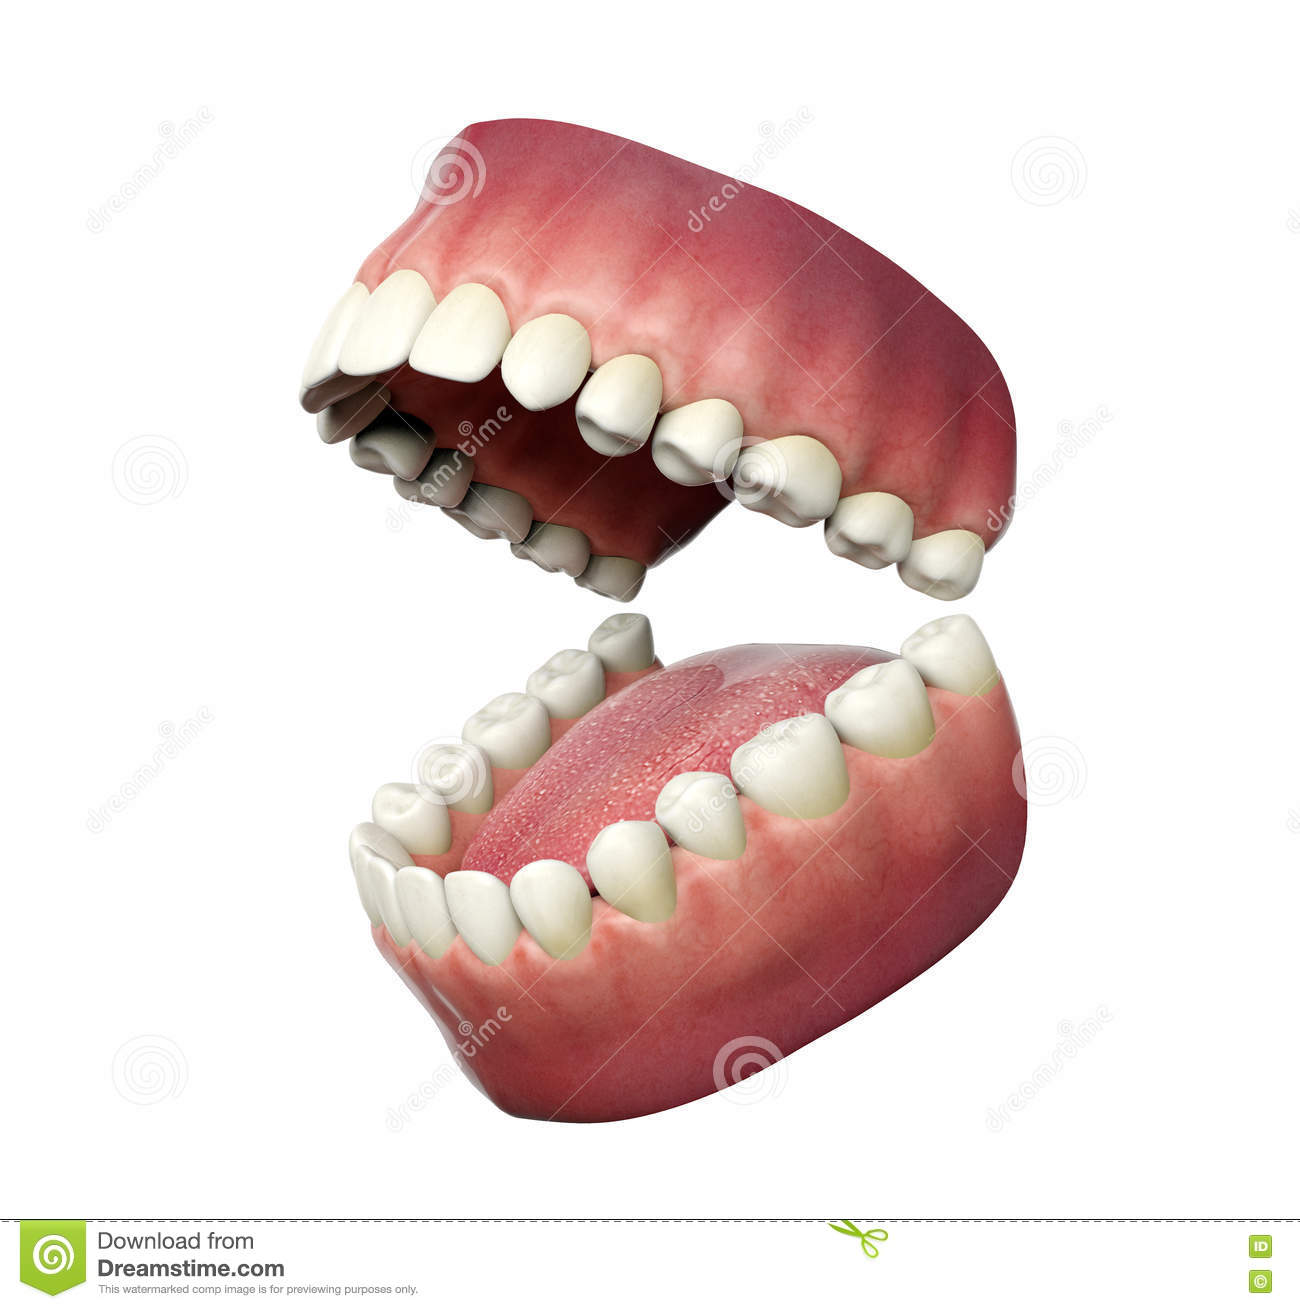 Human teeth opening on white background